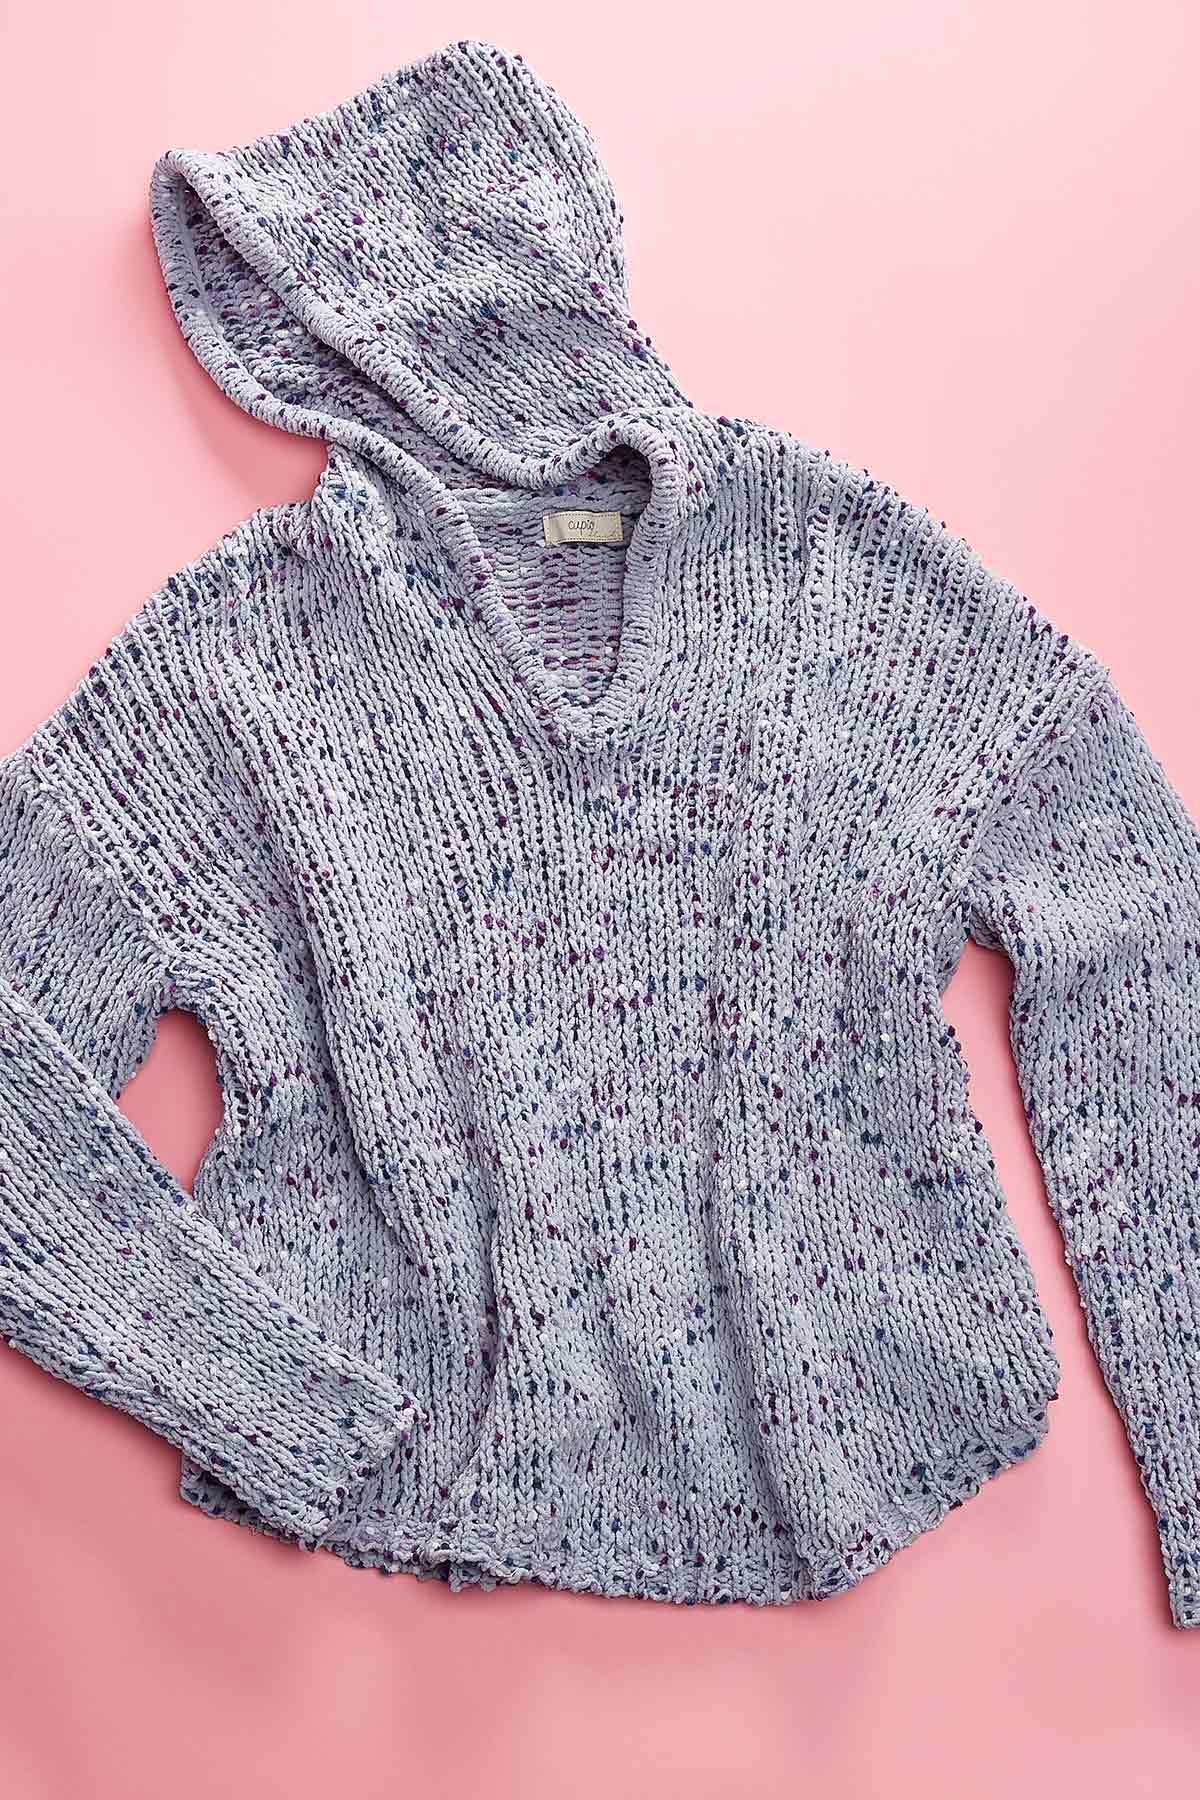 Confetti Hooded Sweater